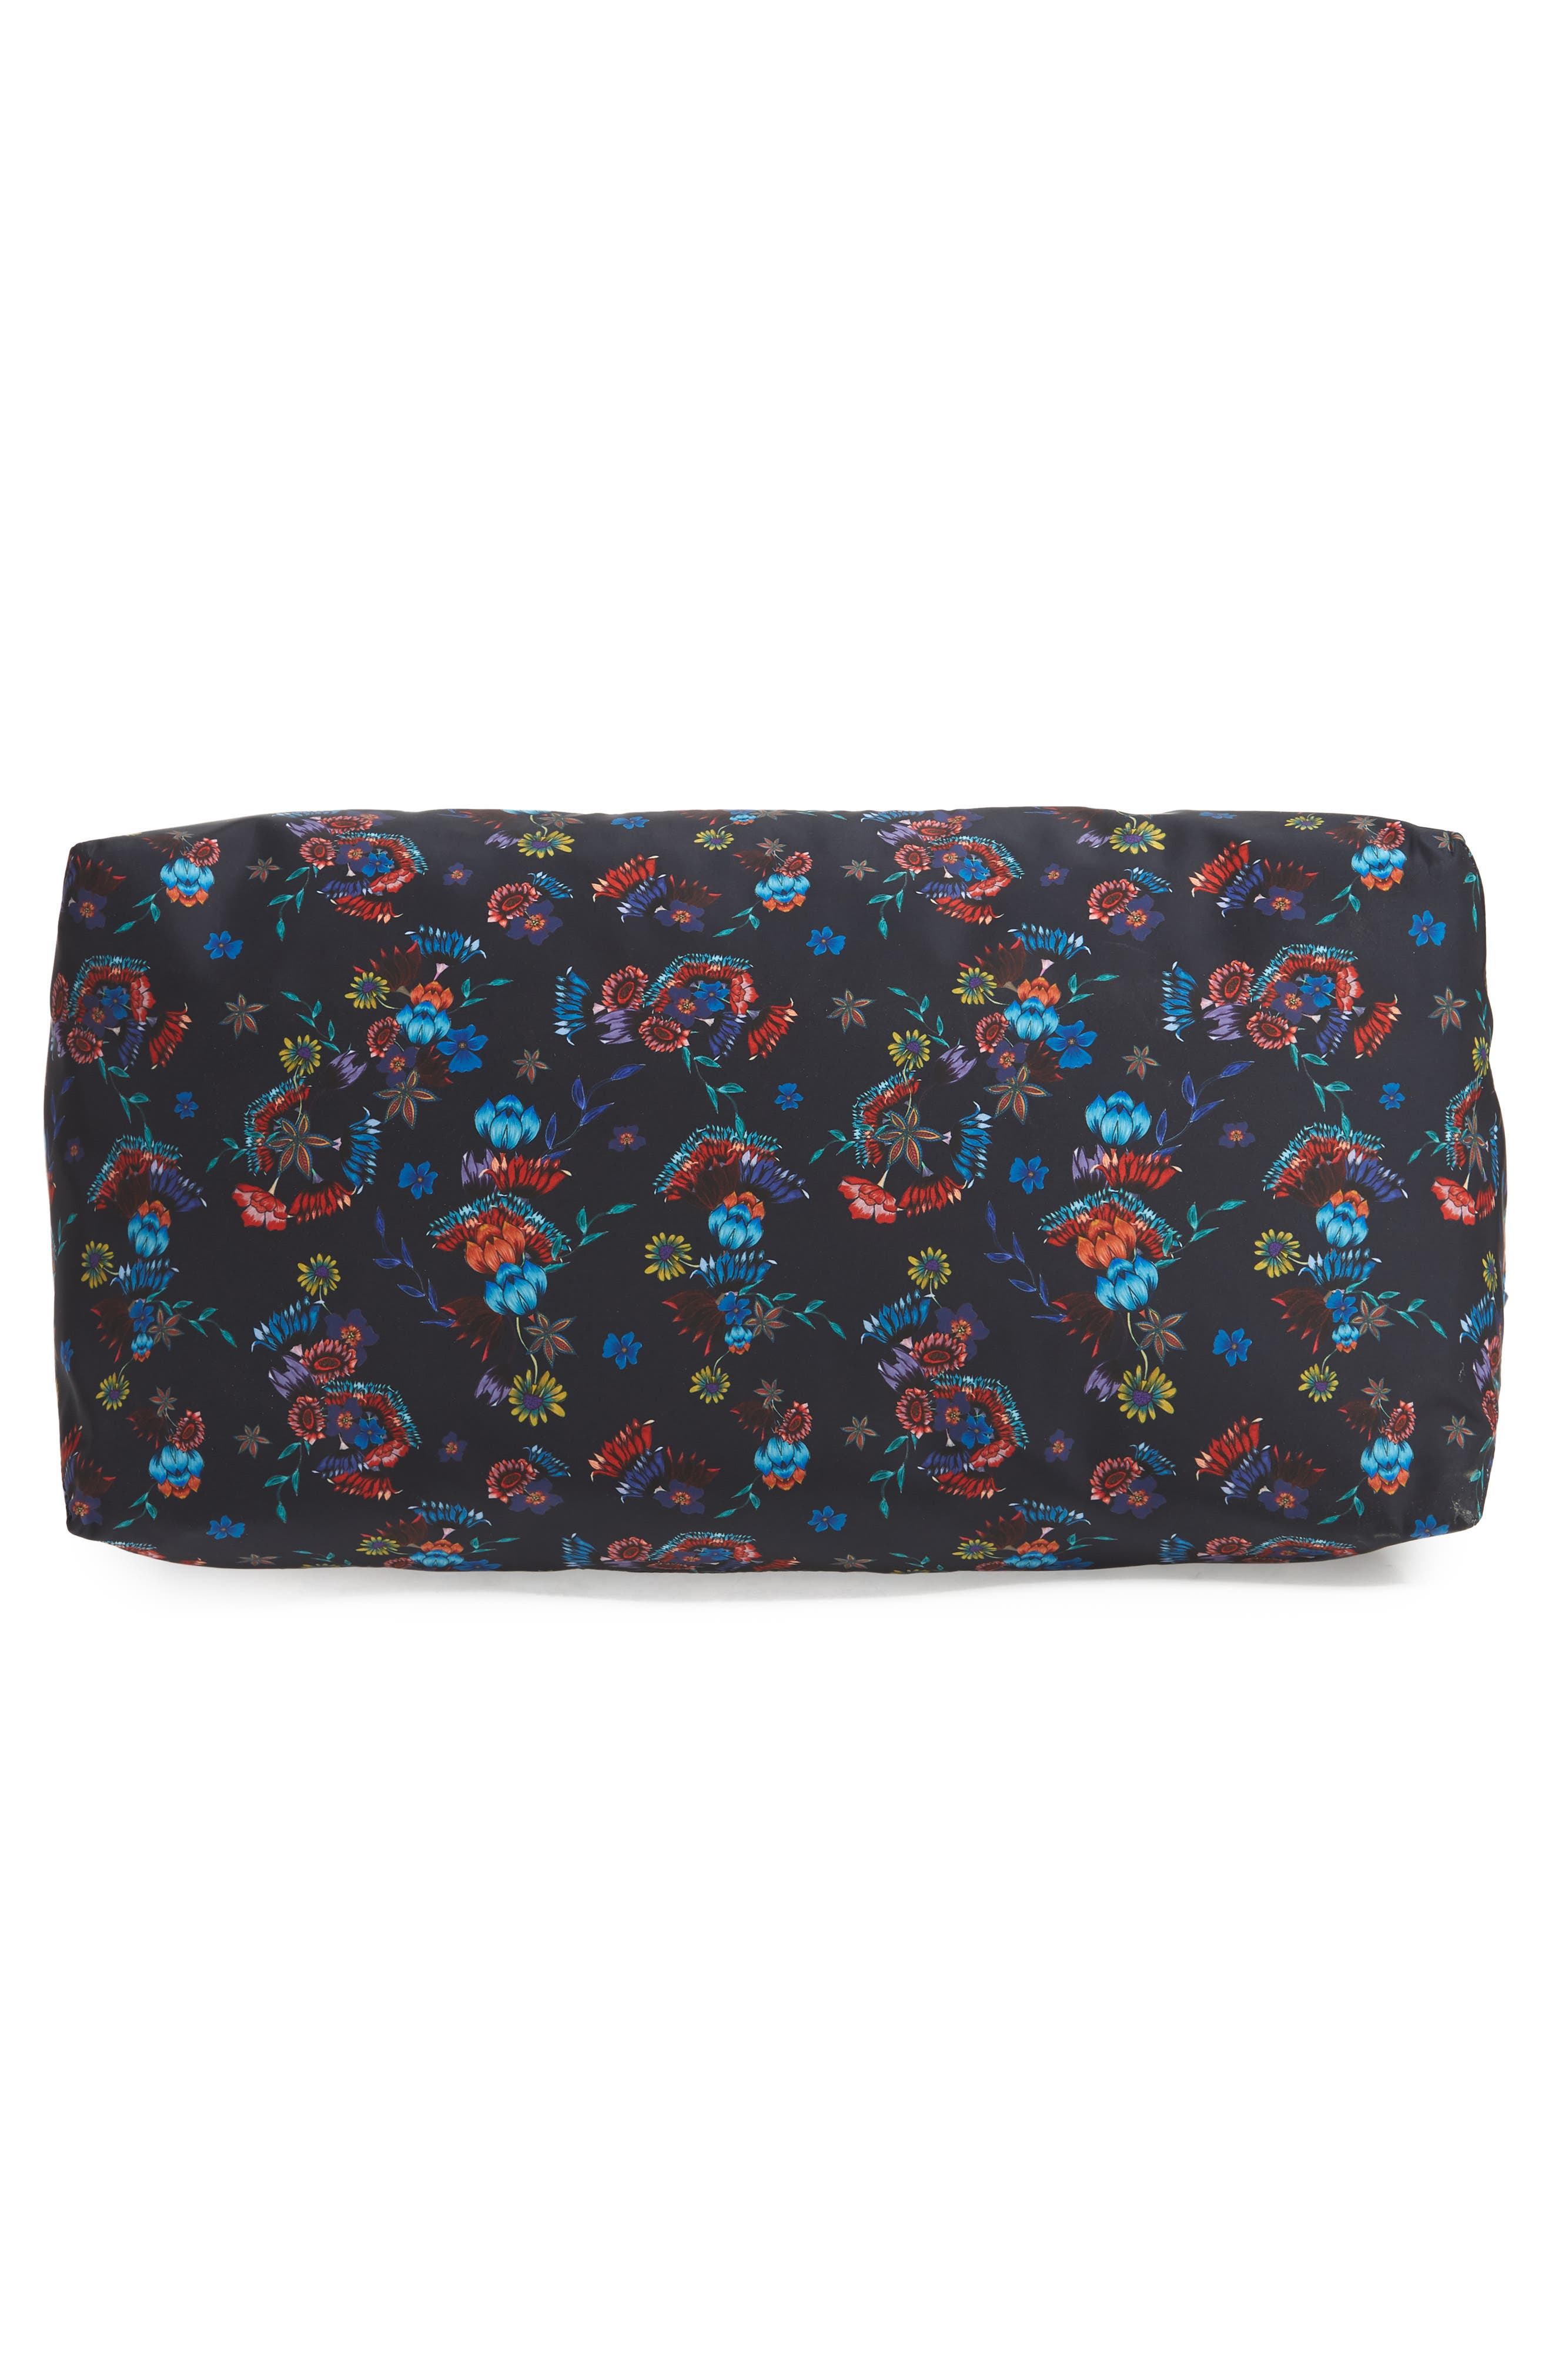 Weekend Nylon Duffel Bag,                             Alternate thumbnail 6, color,                             Floral Blue